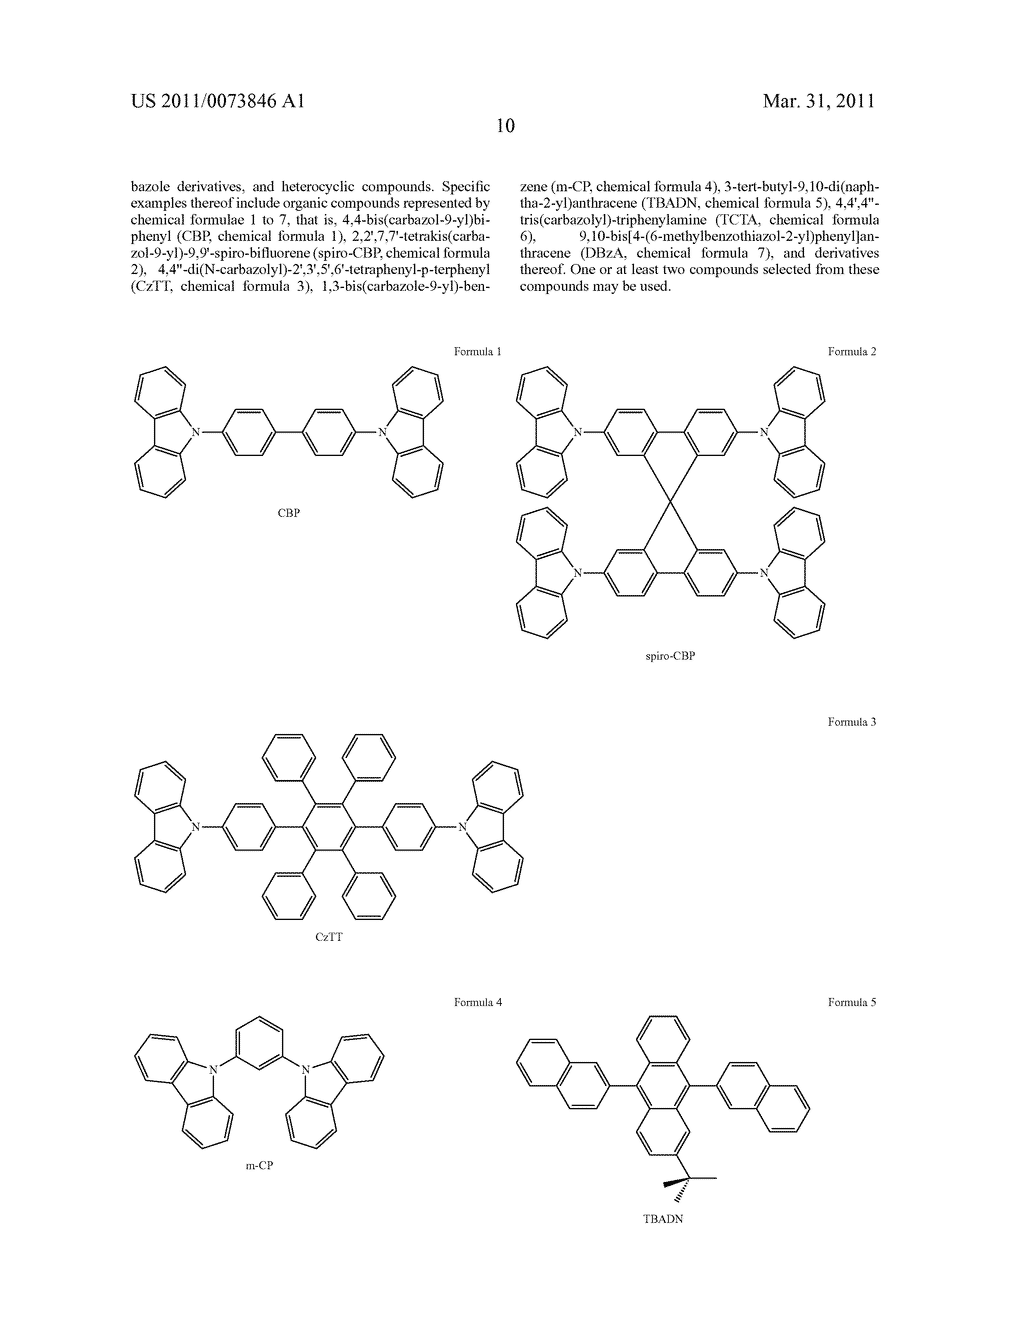 ORGANIC ELECTROLUMINESCENT ELEMENT, METHOD FOR MANUFACTURING THE ORGANIC ELECTROLUMINESCENT ELEMENT, AND LIGHT EMITTING DISPLAY DEVICE - diagram, schematic, and image 20